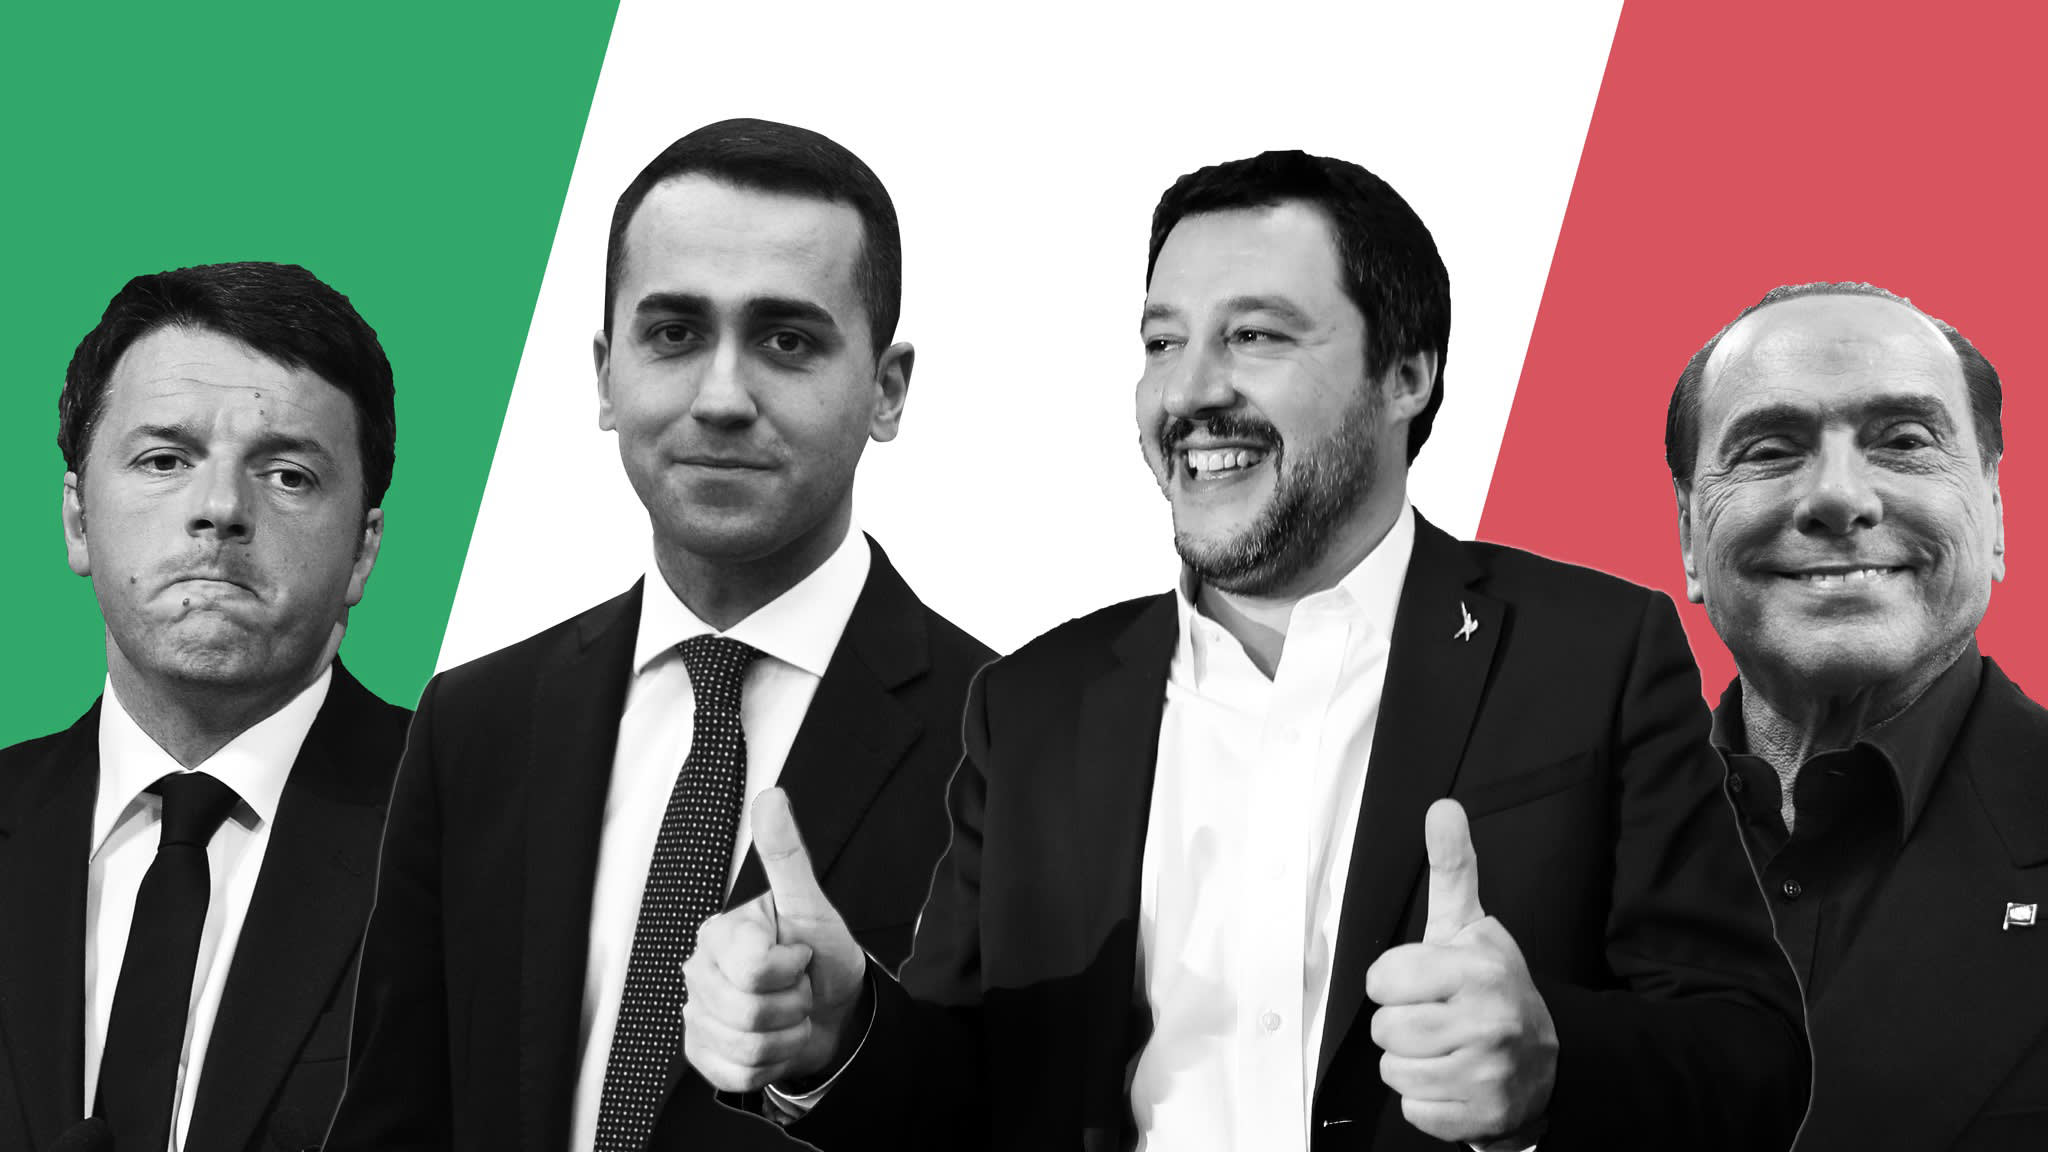 Italy's next government: four options as voters shun establishment